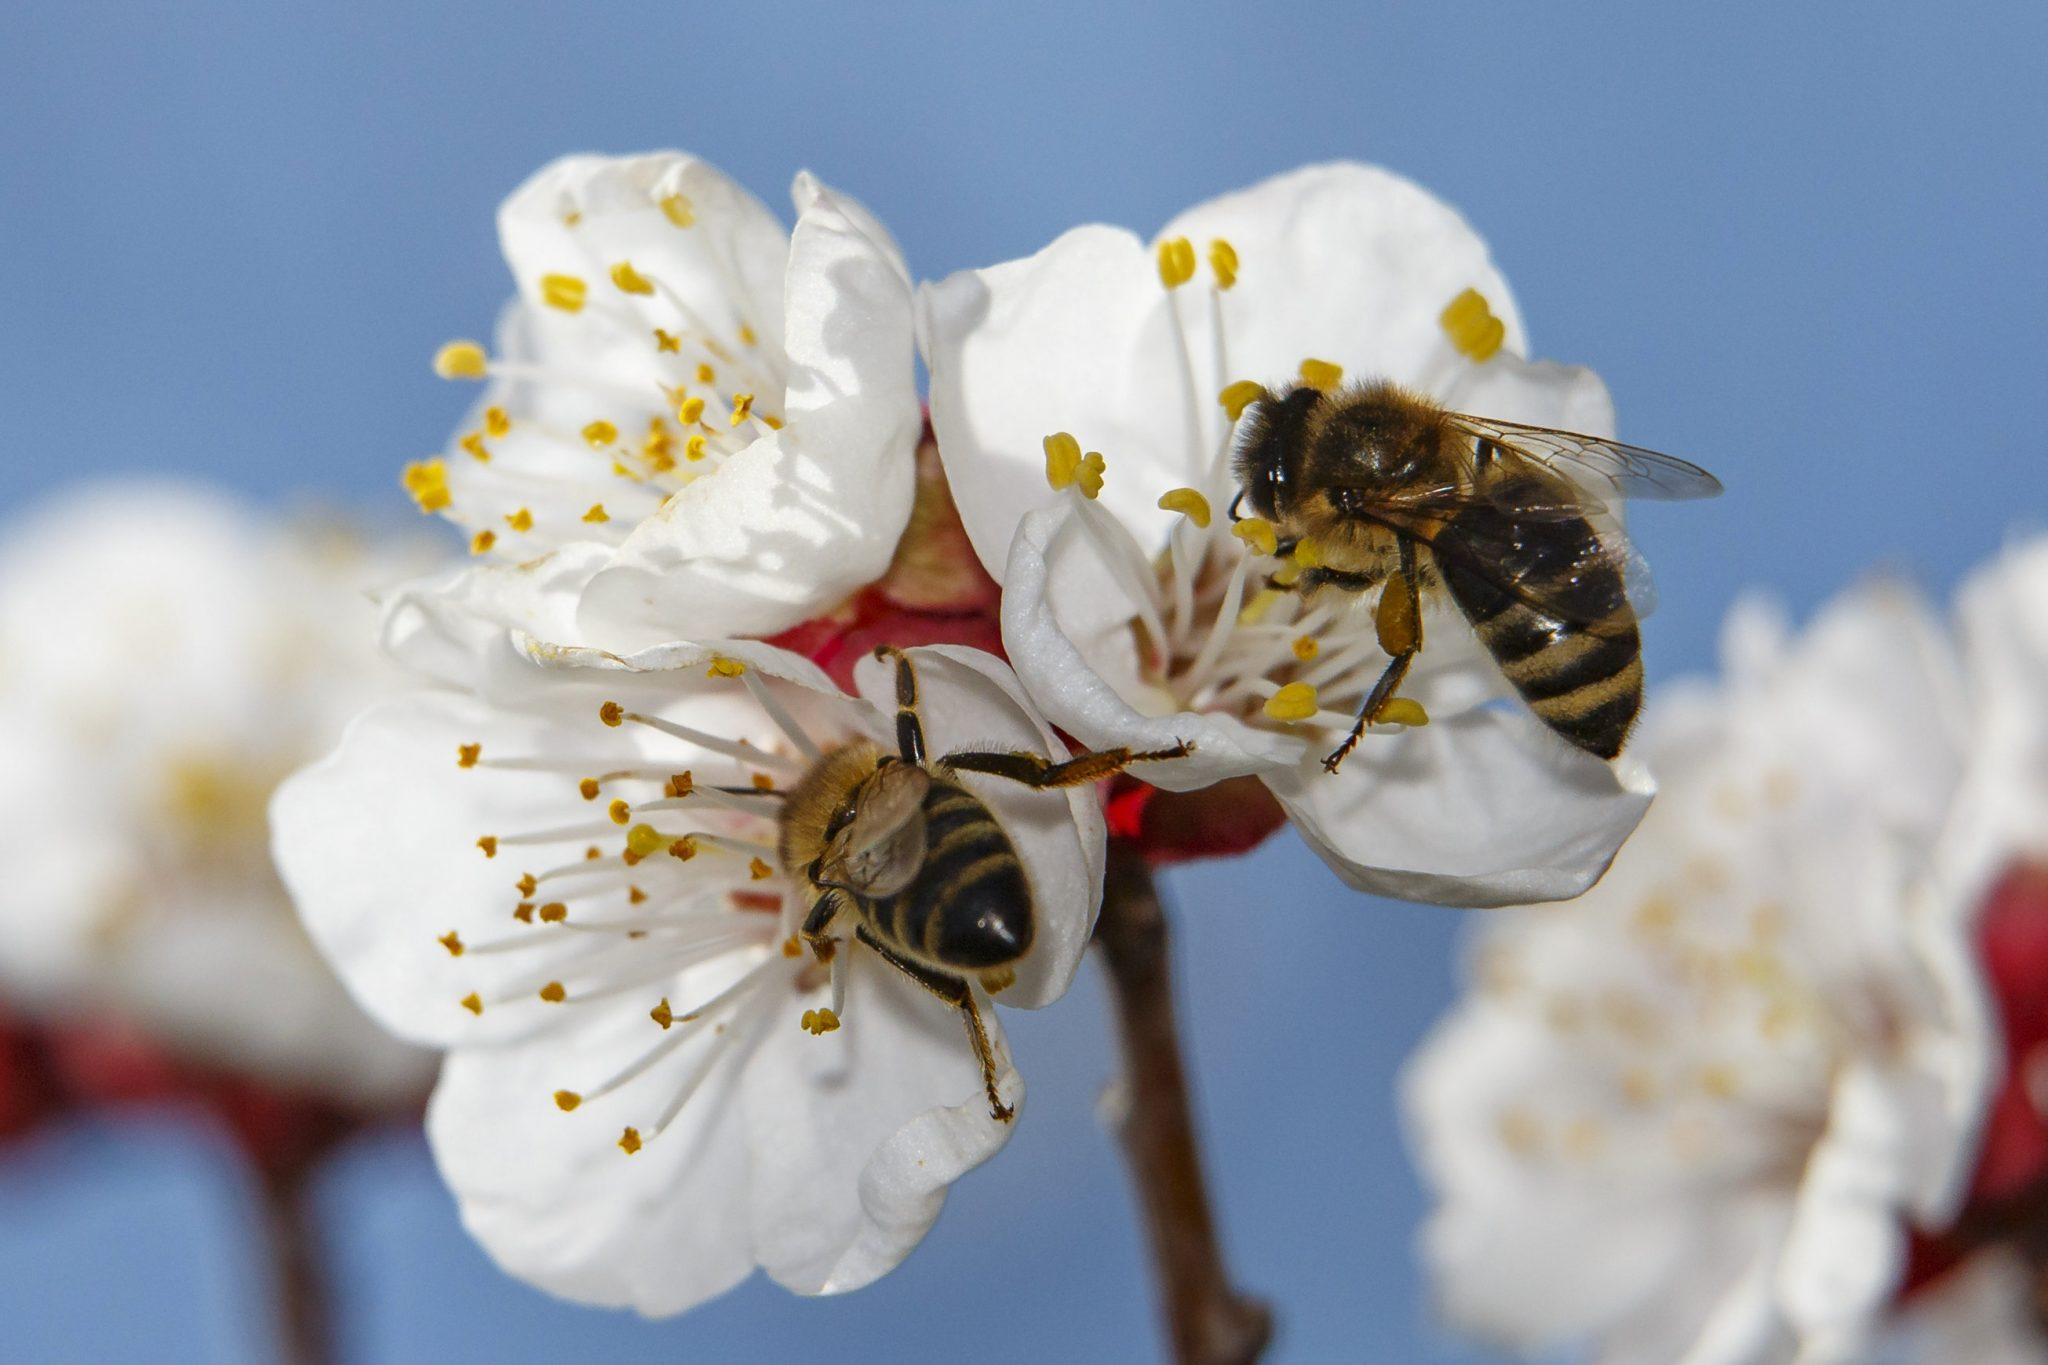 Hungary Collected over 15,000 Signatures for European Initiative to Save Bees